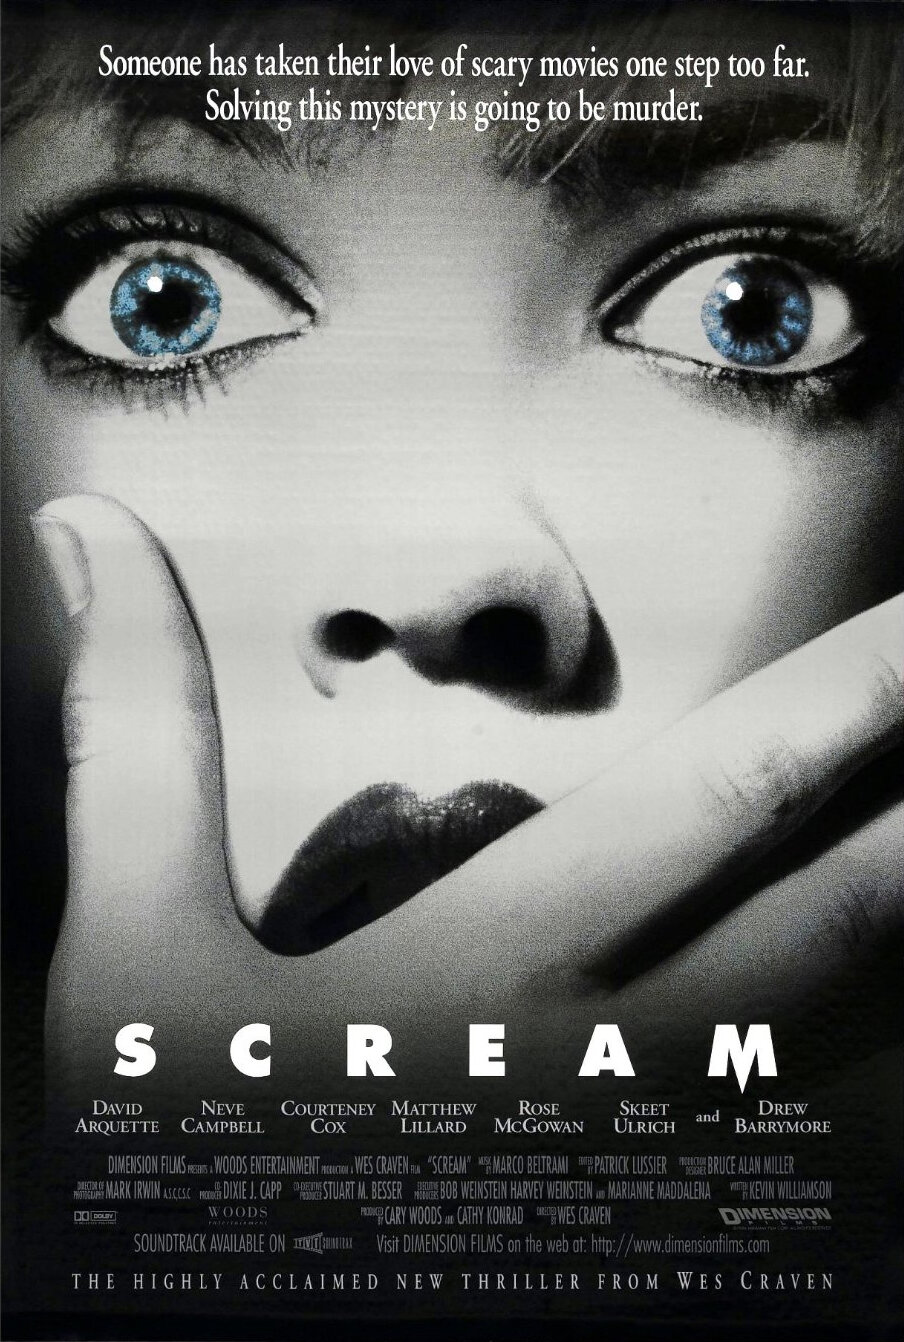 Scream (1996) - Directed by: Wes CravenStarring: Neve Campbell, Courteney Cox, David Arquette, Skeet Ulrich, Matthew LillardRated: R for Strong Graphic Horror Violence and Gore, and for LanguageRunning Time: 1h 51mTMM Score: 3.5 StarsSTRENGTHS: Fantastic Blend of Humor and Terror, IconicWEAKNESSES: Tension isn't Tight, Over the Top Performances